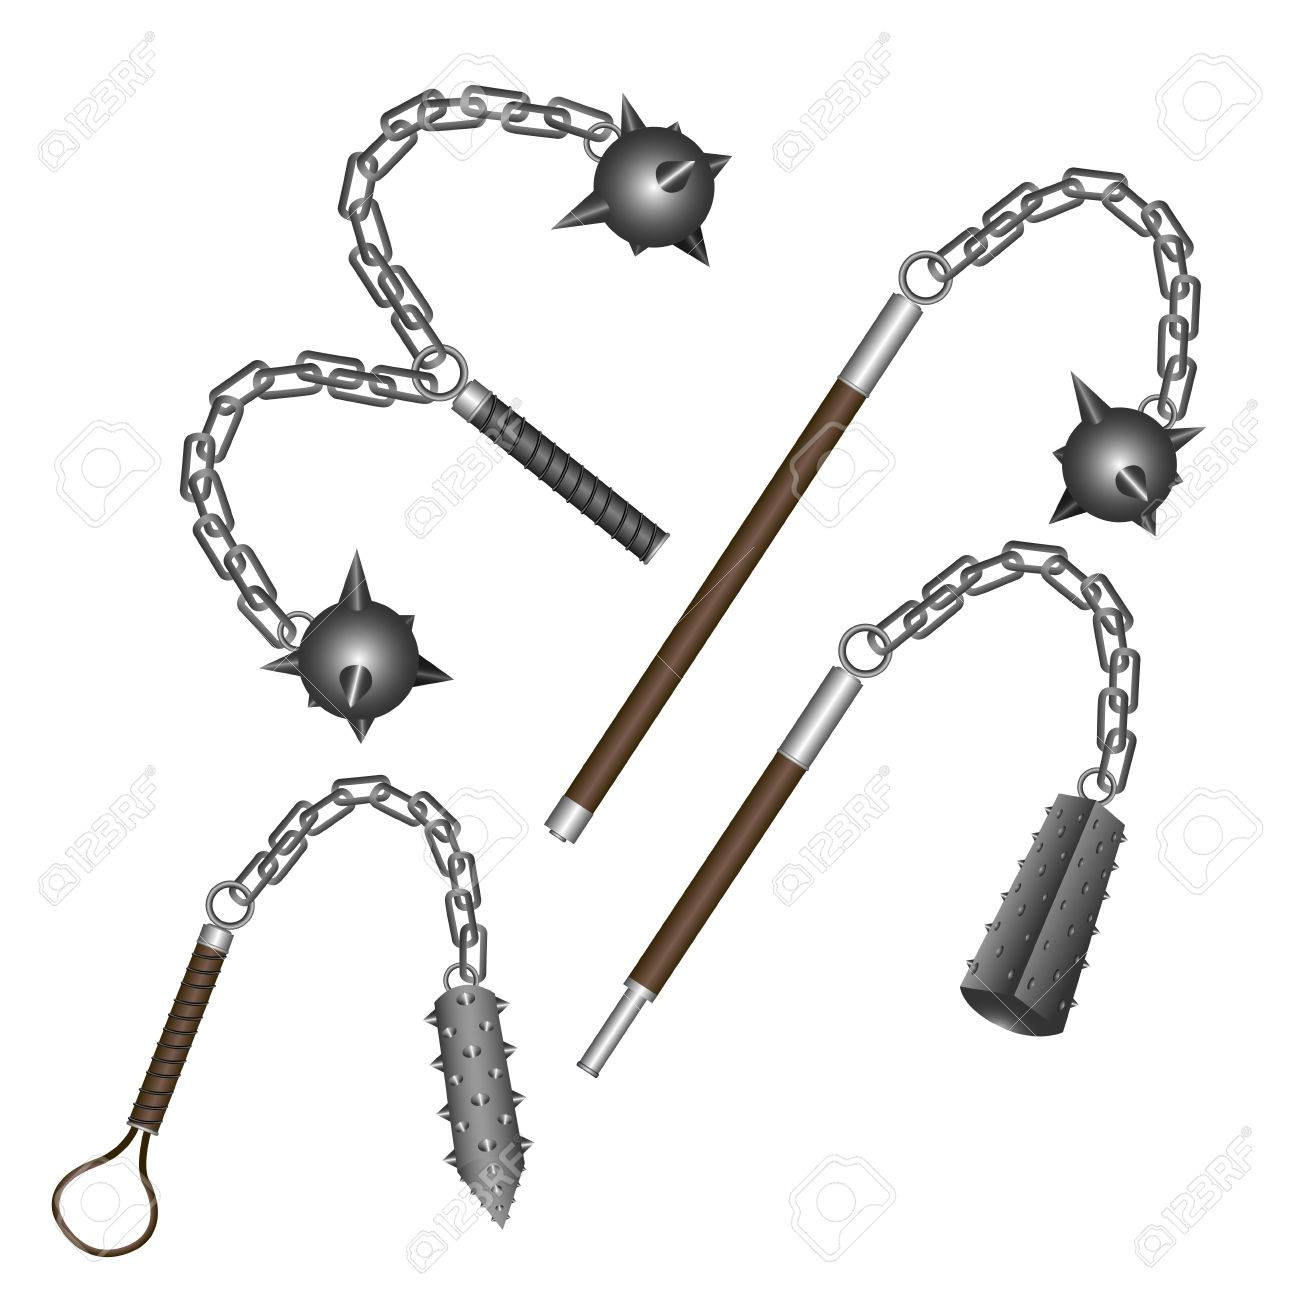 set of flail weapons on a white background vector illustration